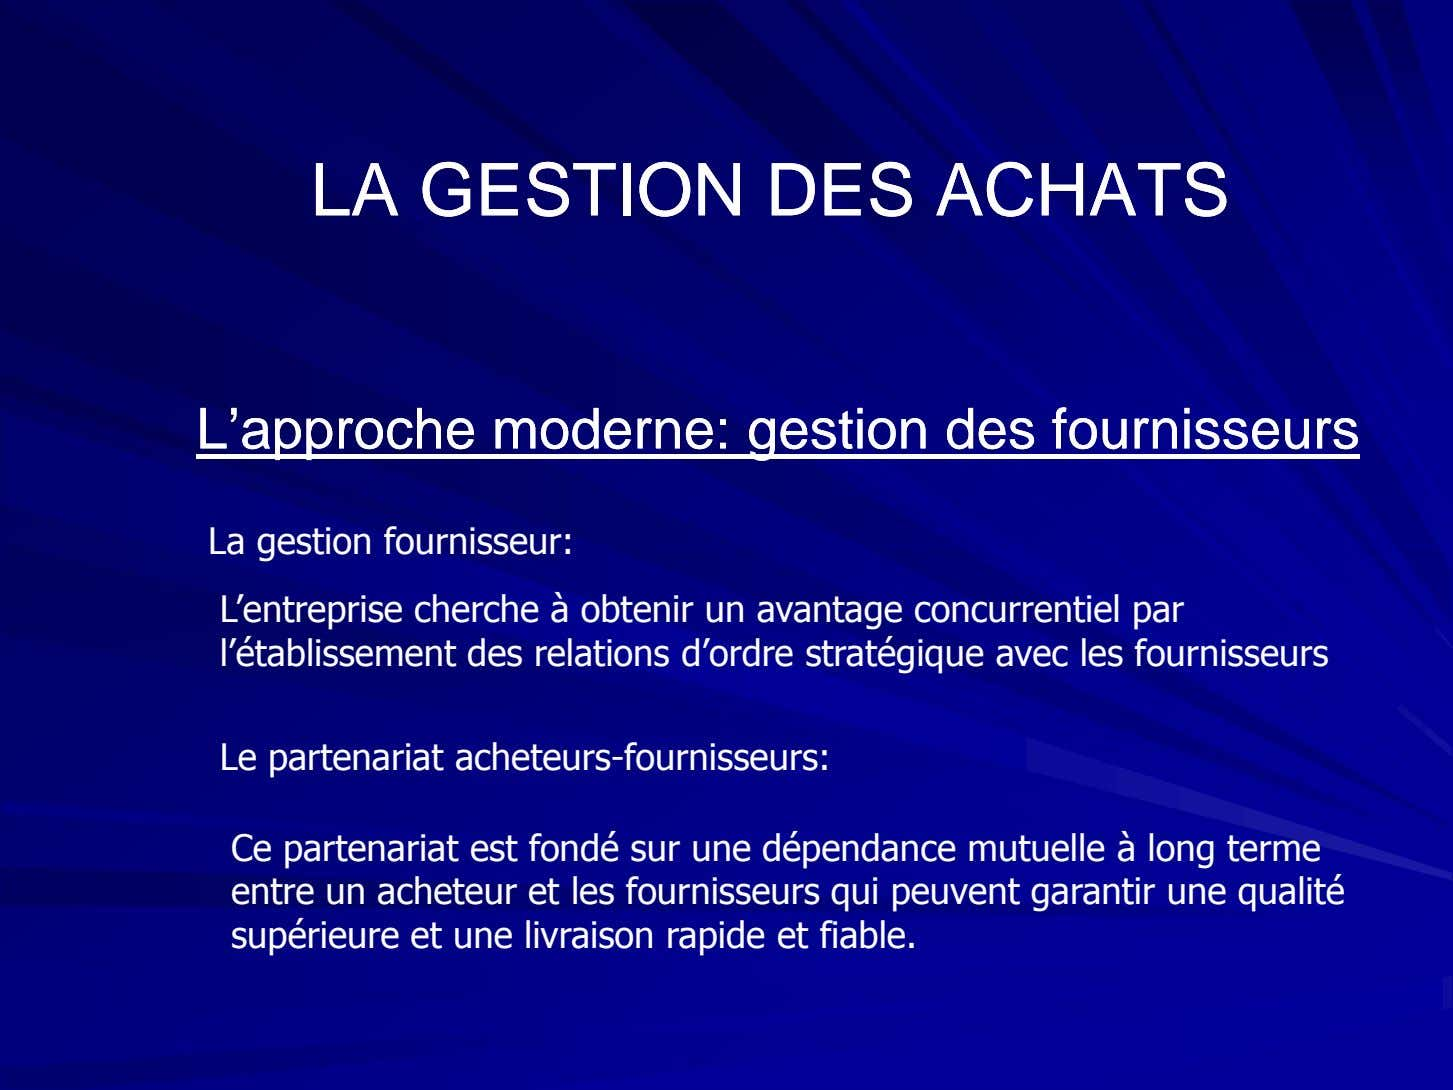 LALA GESTIONGESTION DESDES ACHATSACHATS L'approcheL'approche moderne:moderne: gestiongestion desdes